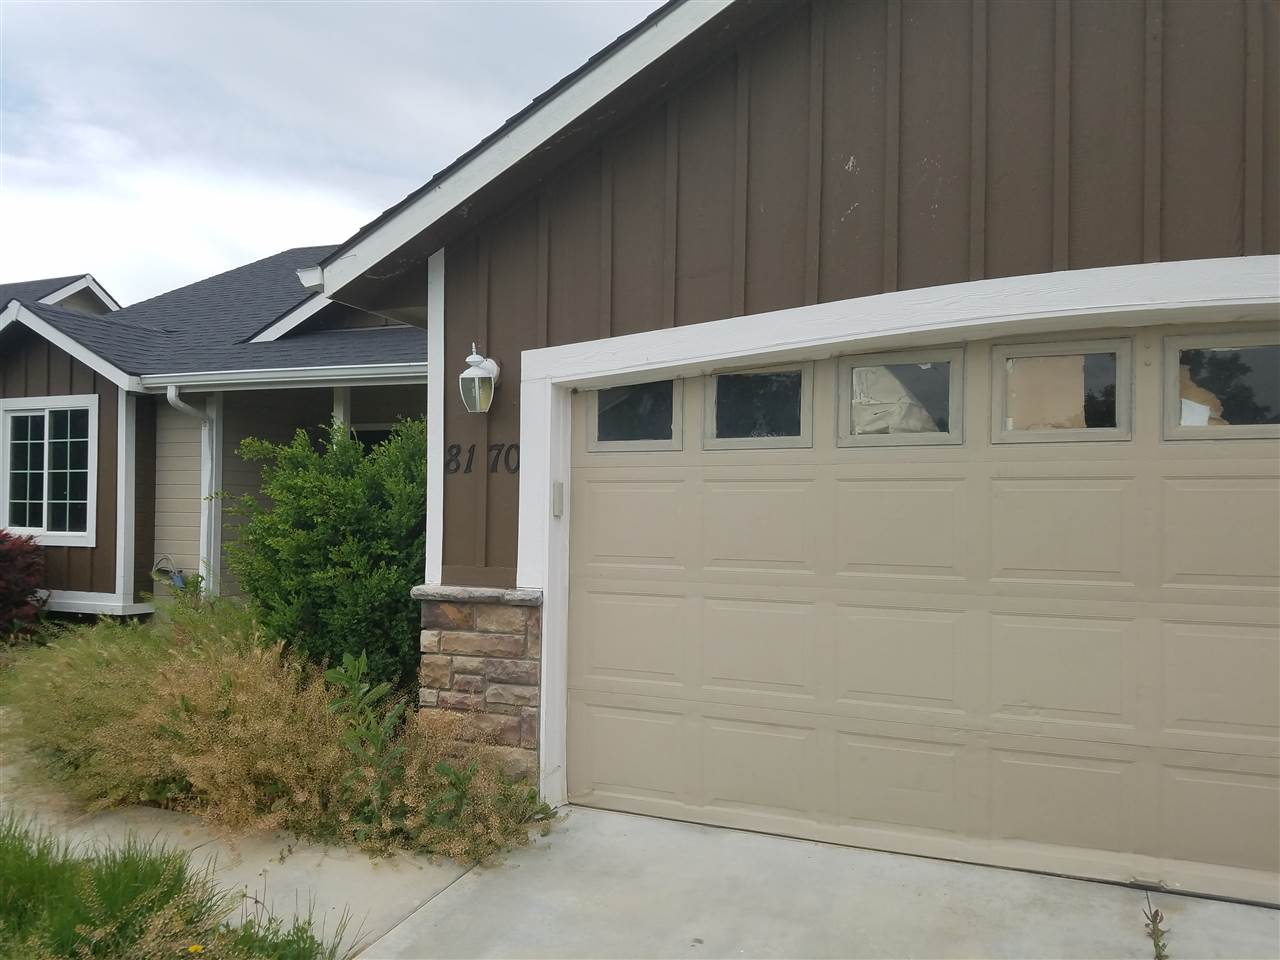 8170 E Gallatin Ct,Nampa,Idaho 83687,4 Bedrooms Bedrooms,2 BathroomsBathrooms,Residential,8170 E Gallatin Ct,98693353